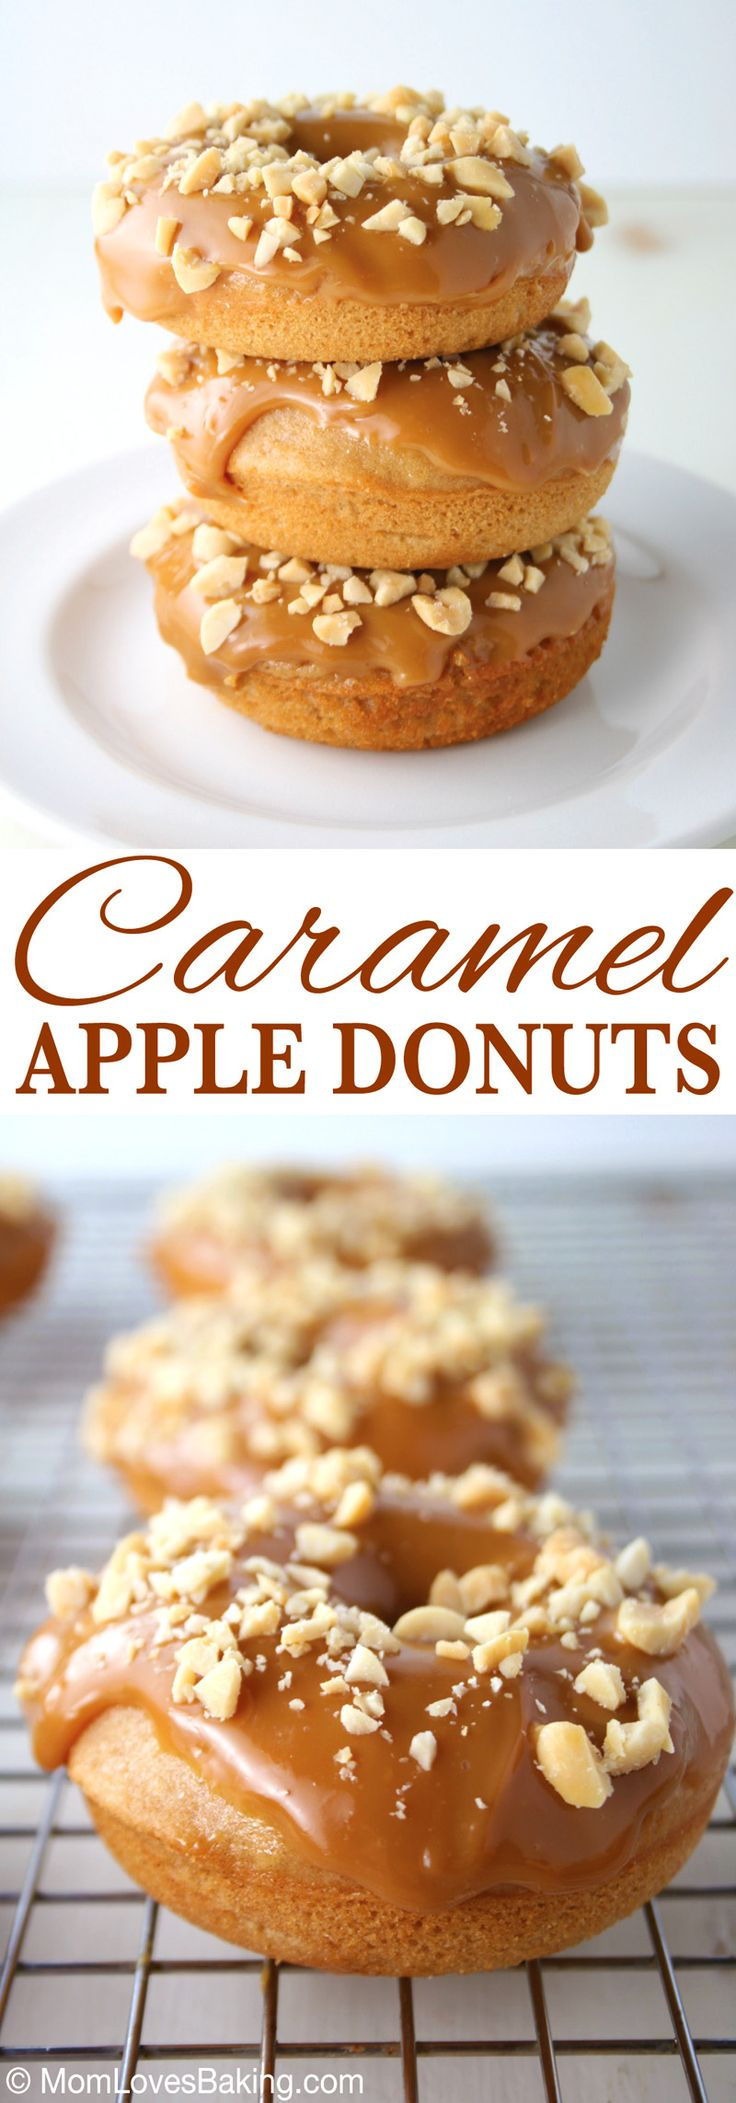 Caramel Apple Donuts are baked donuts made from scratch dipped in an ooey gooey homemade caramel glaze, plus chopped peanuts on top. So, so good y'all! #BakeItWithMotts [client]